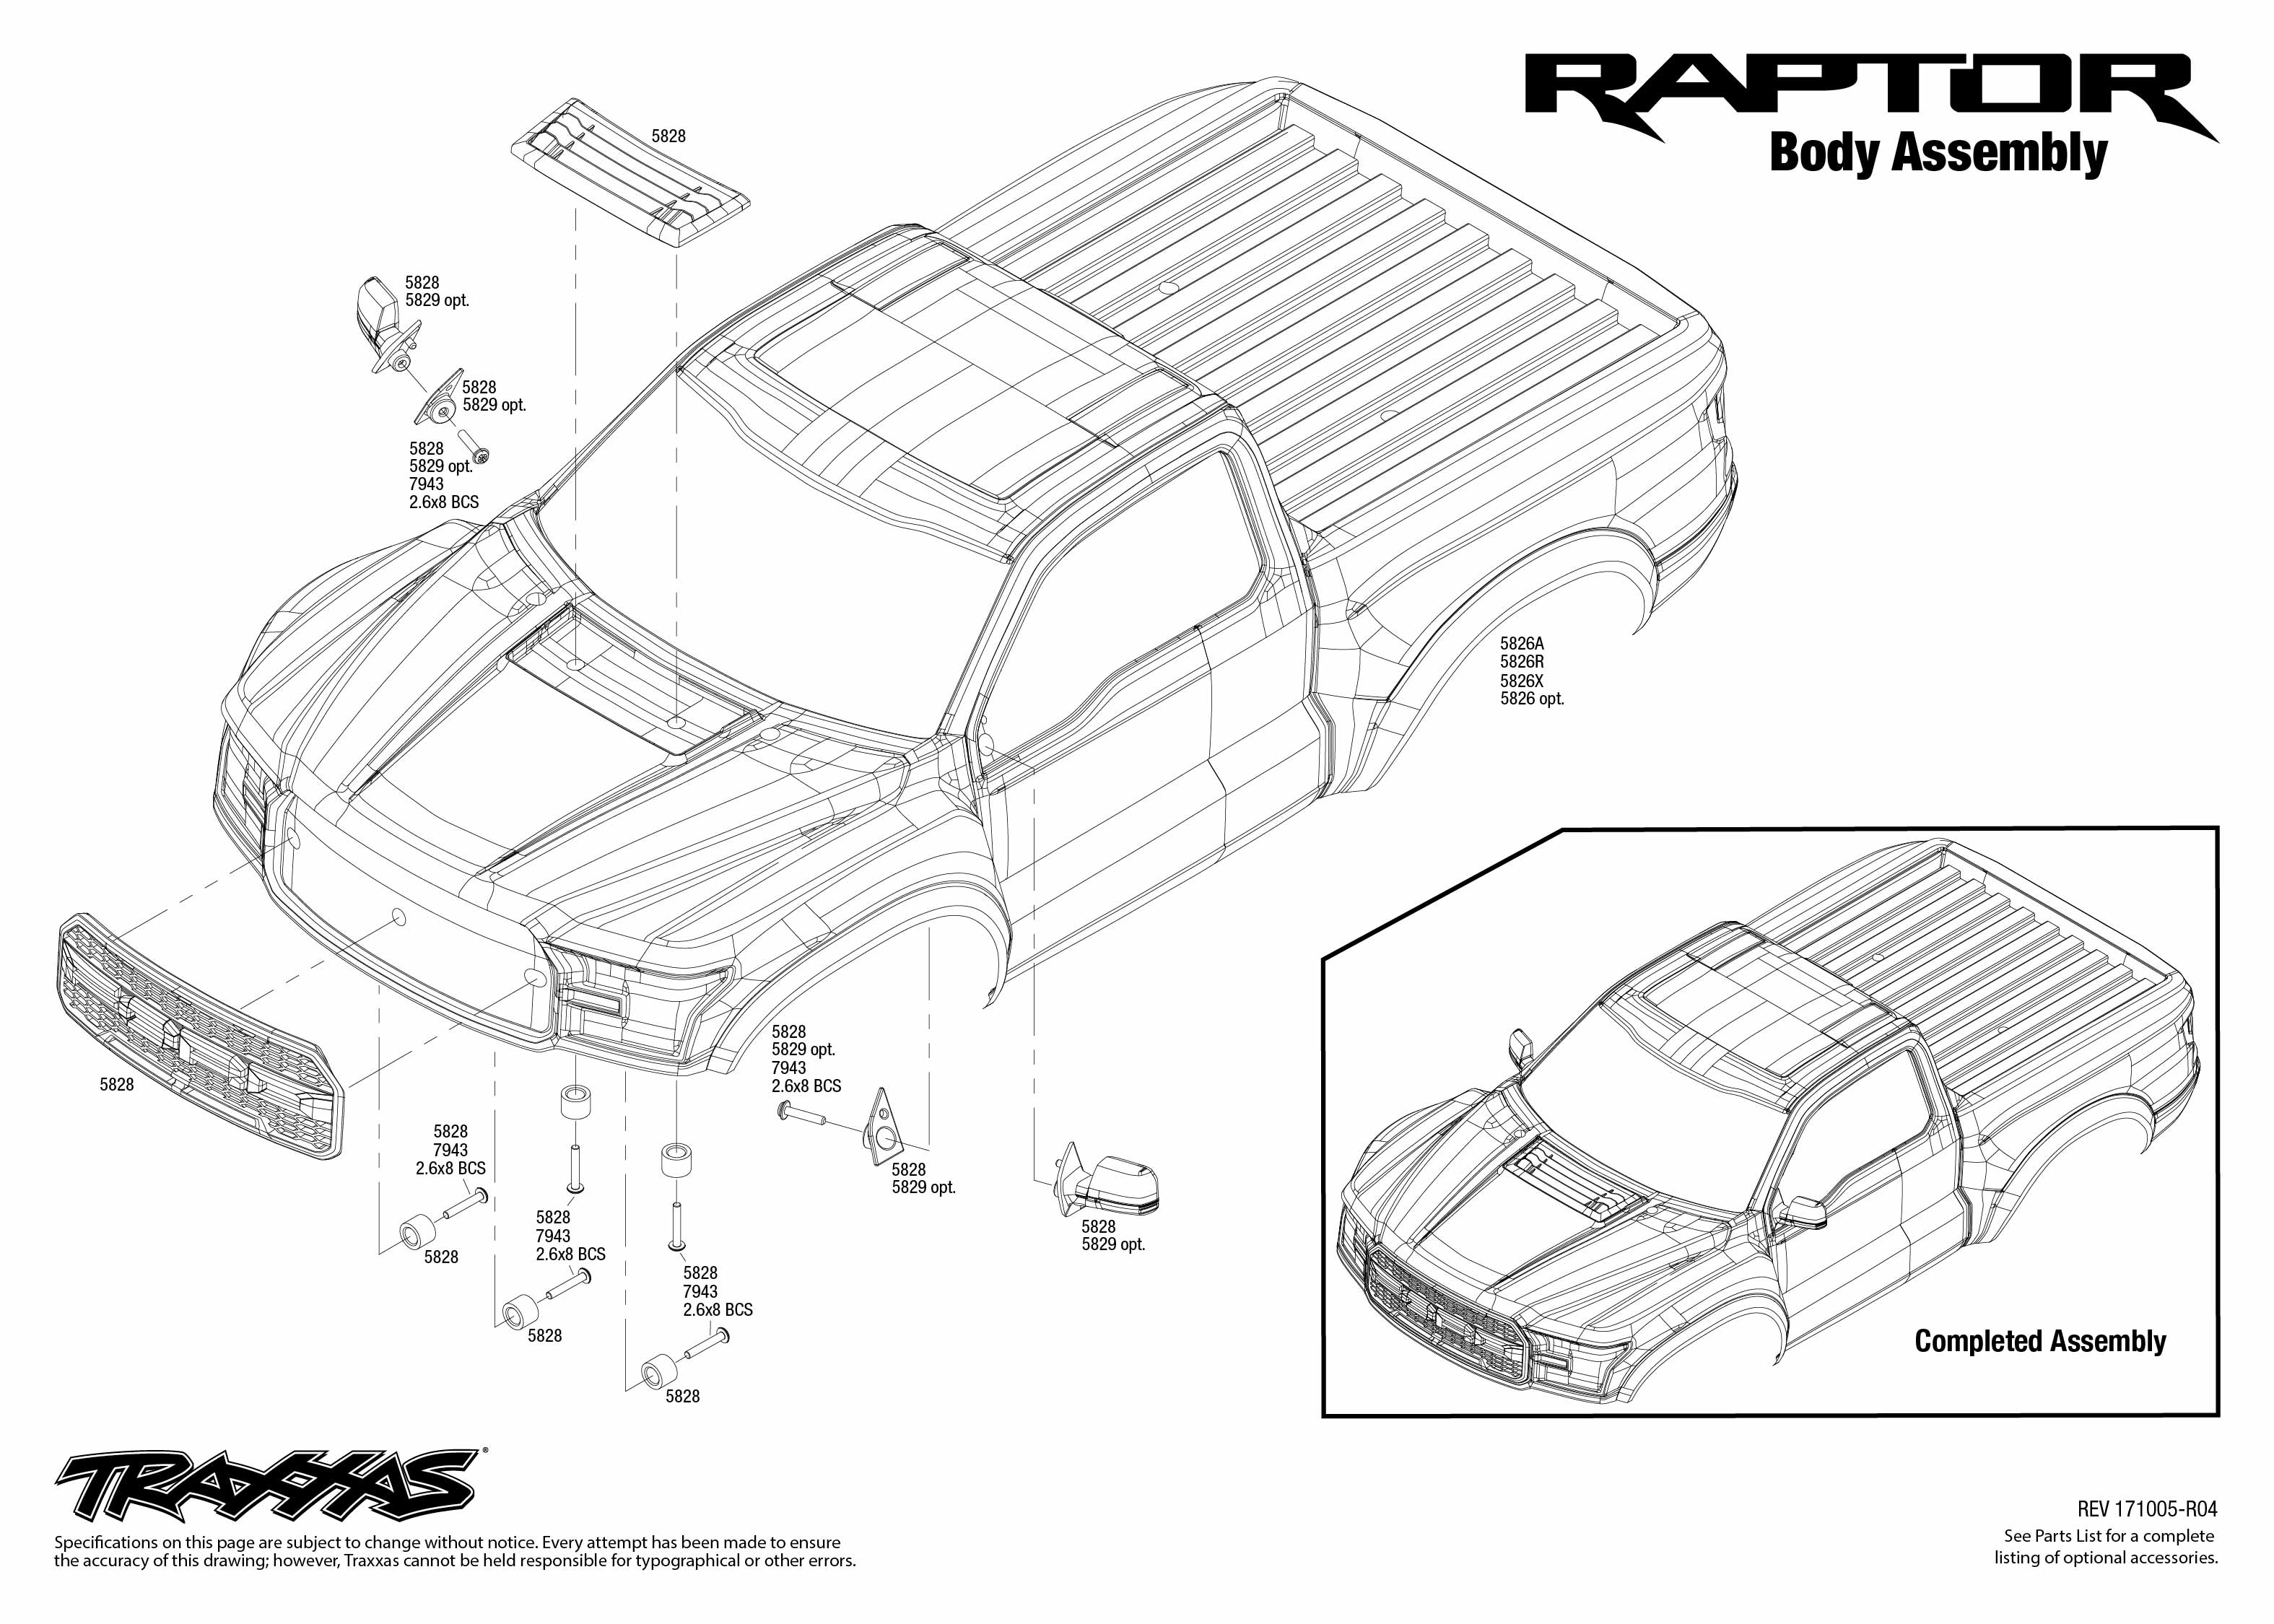 Ford F-150 Raptor (58094-1) Body Assembly Exploded View